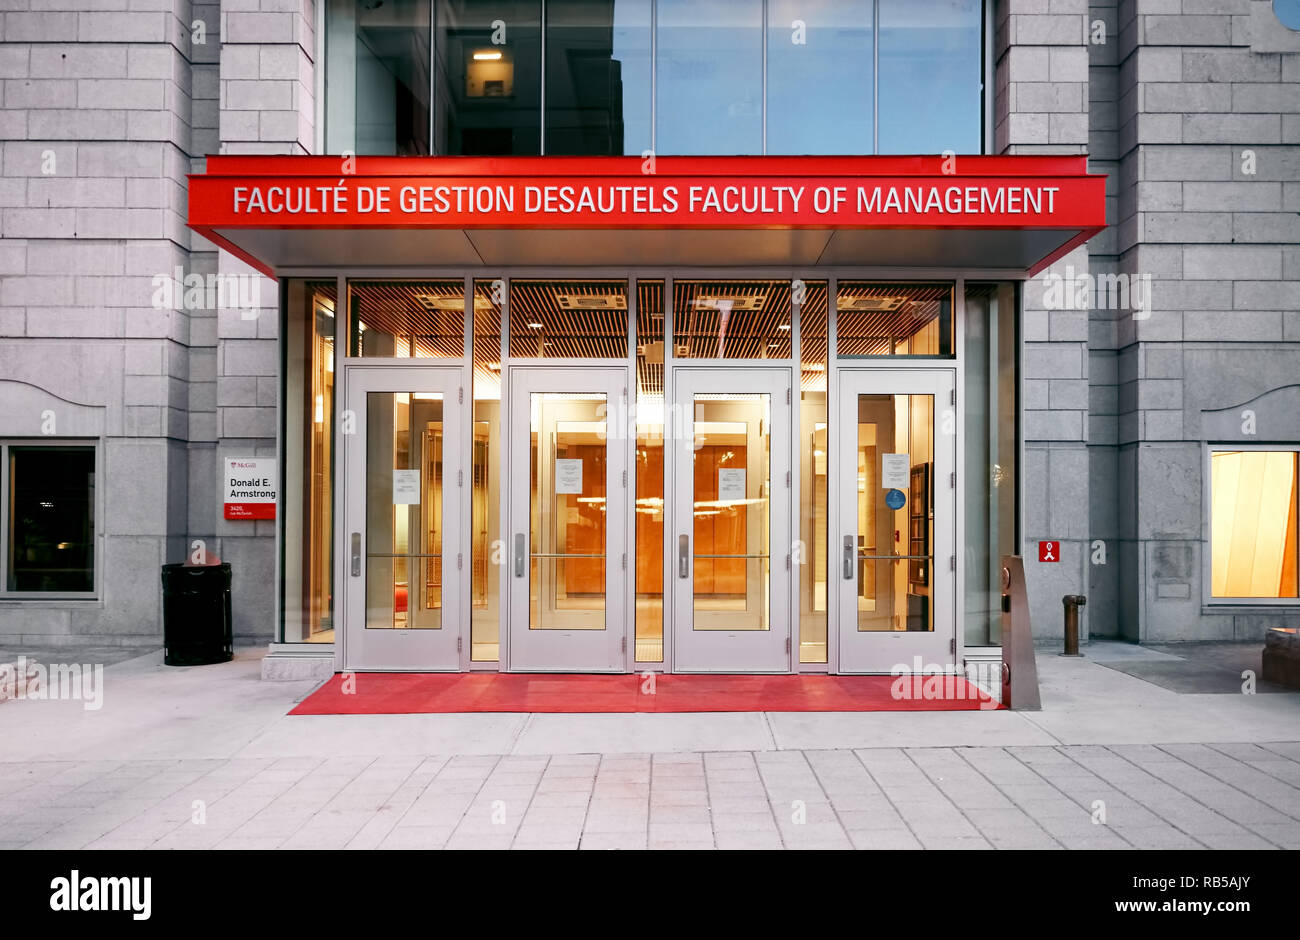 Mcgill university faculty of management armstrong building entrance on mctavish street in Montreal, Quebec, Canada. - Stock Image